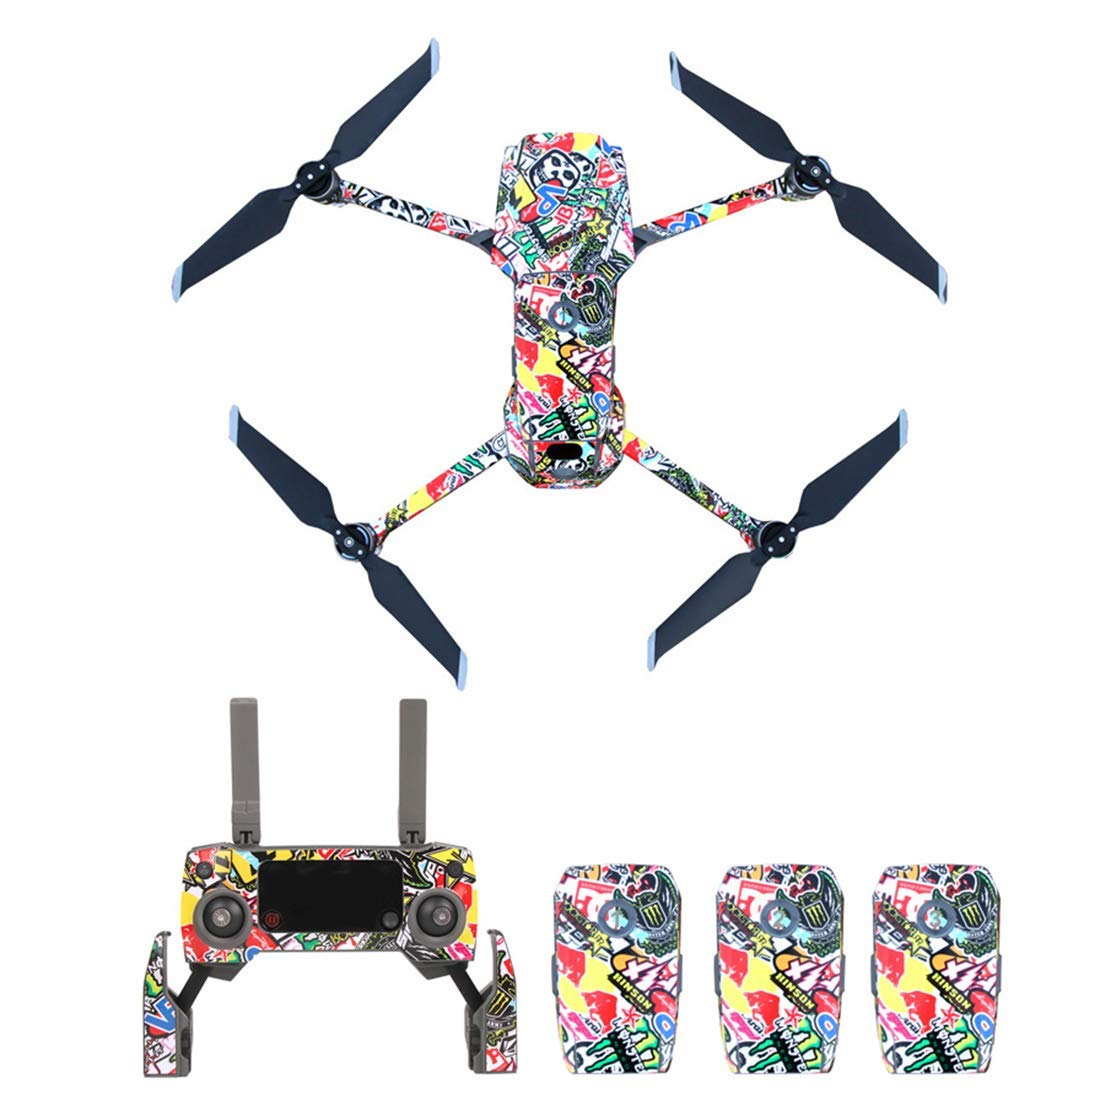 YIFAN Drone Decals Stickers for DJI Mavic 2 PRO/Mavic 2 Zoom, Waterproof Anti Scratch Skin Full Set Decorative Skin Wrap Decal- for Drone + Controller + 3 Batteries